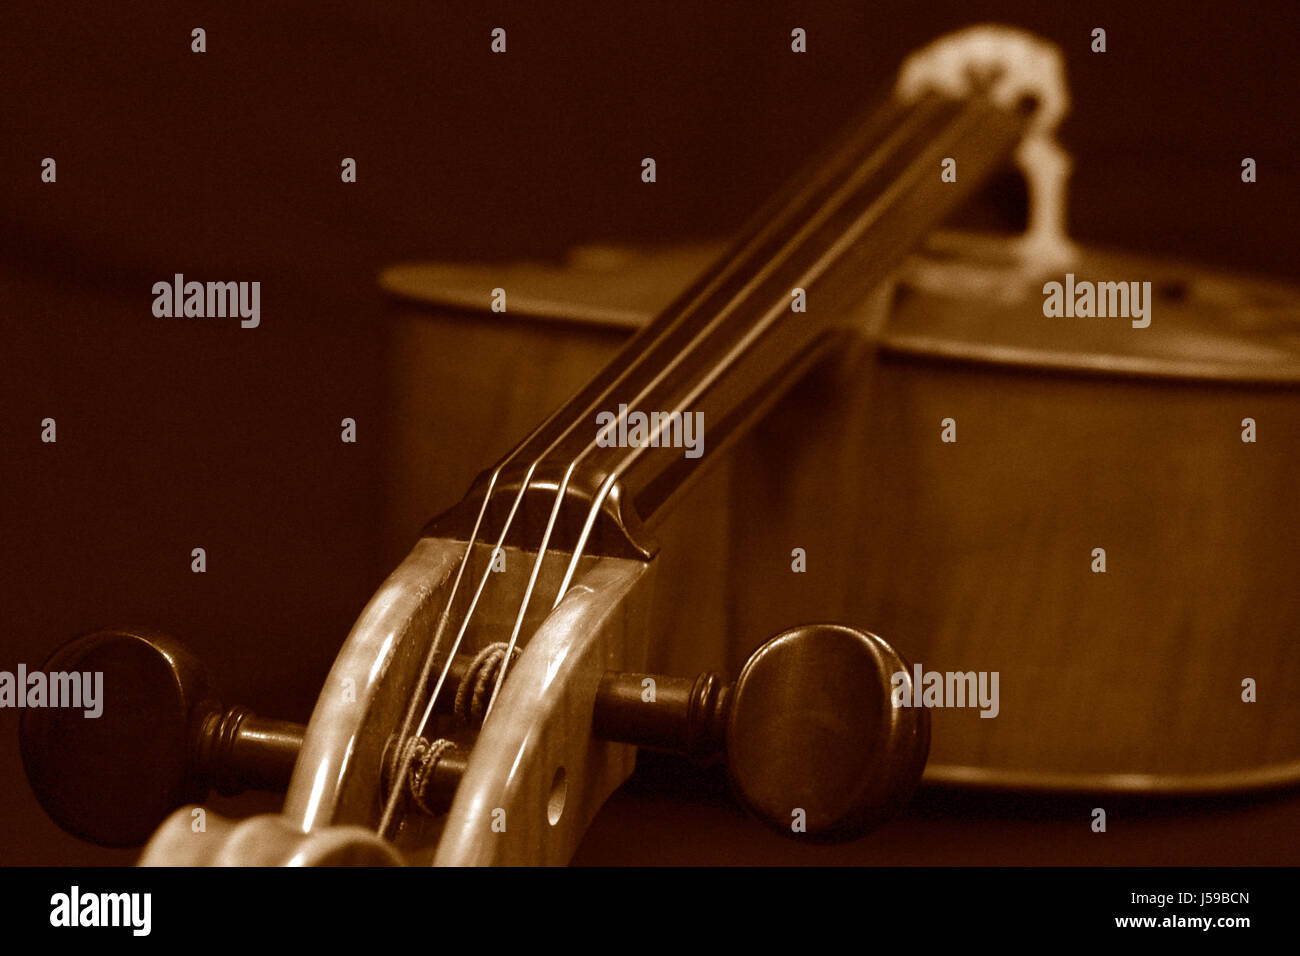 sepia classical violin bowed instrument duplex fingerboard cello contrabass - Stock Image